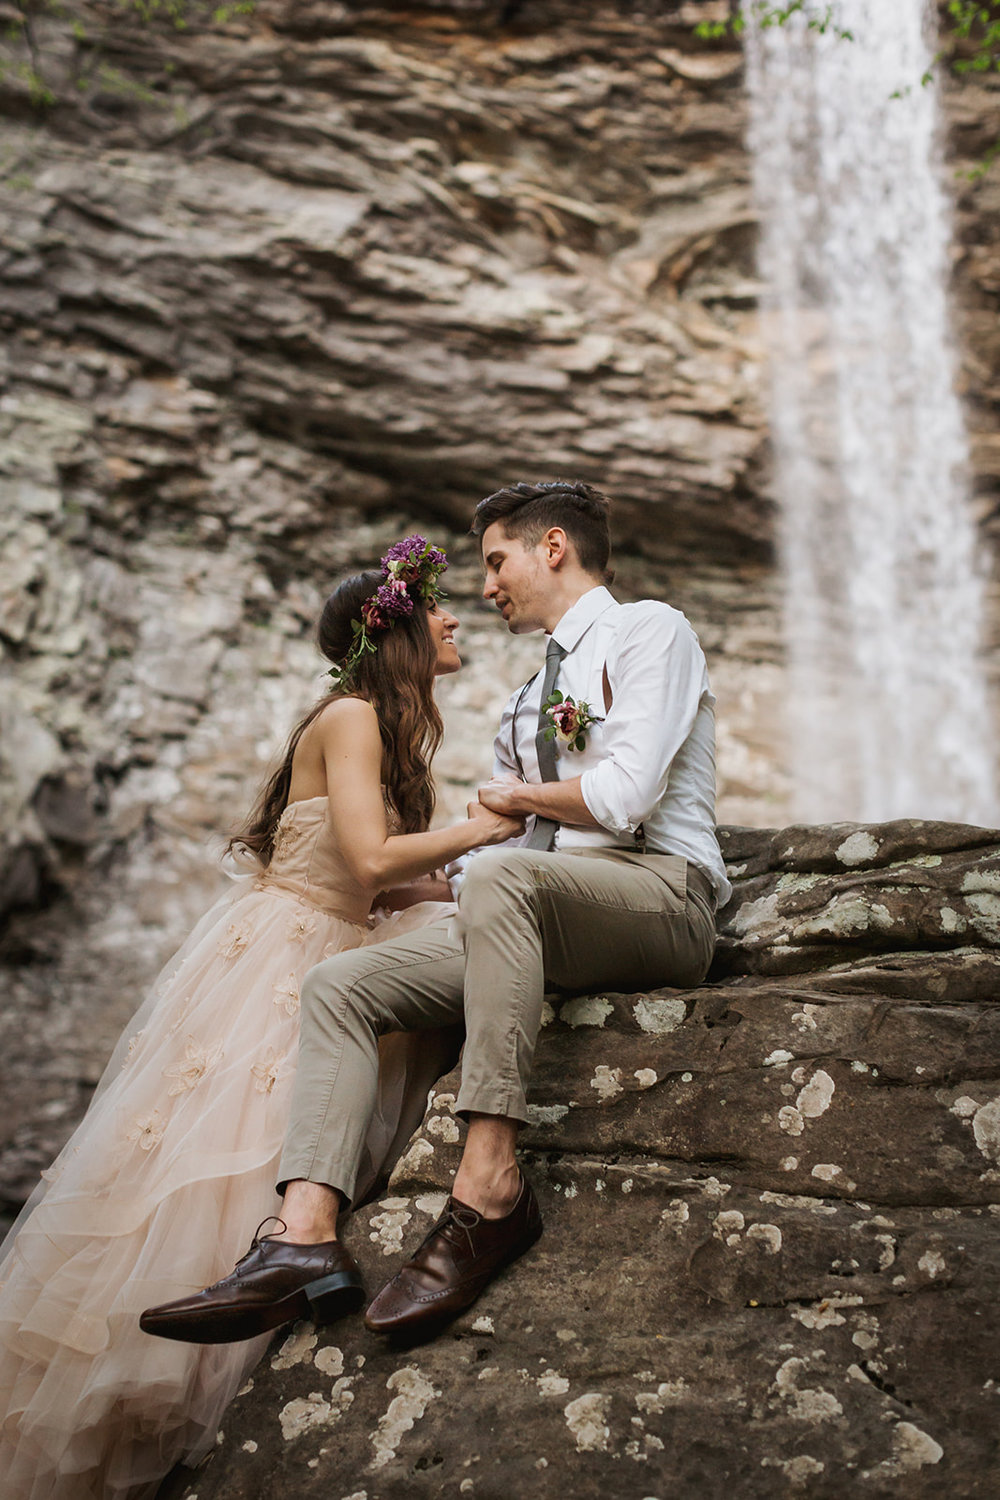 Glenn and Noel Campagna (PIECES) Promise Mountain Kayla Potterbaum Wedding Anniversary Photo Shoot at Ozone Falls, TN